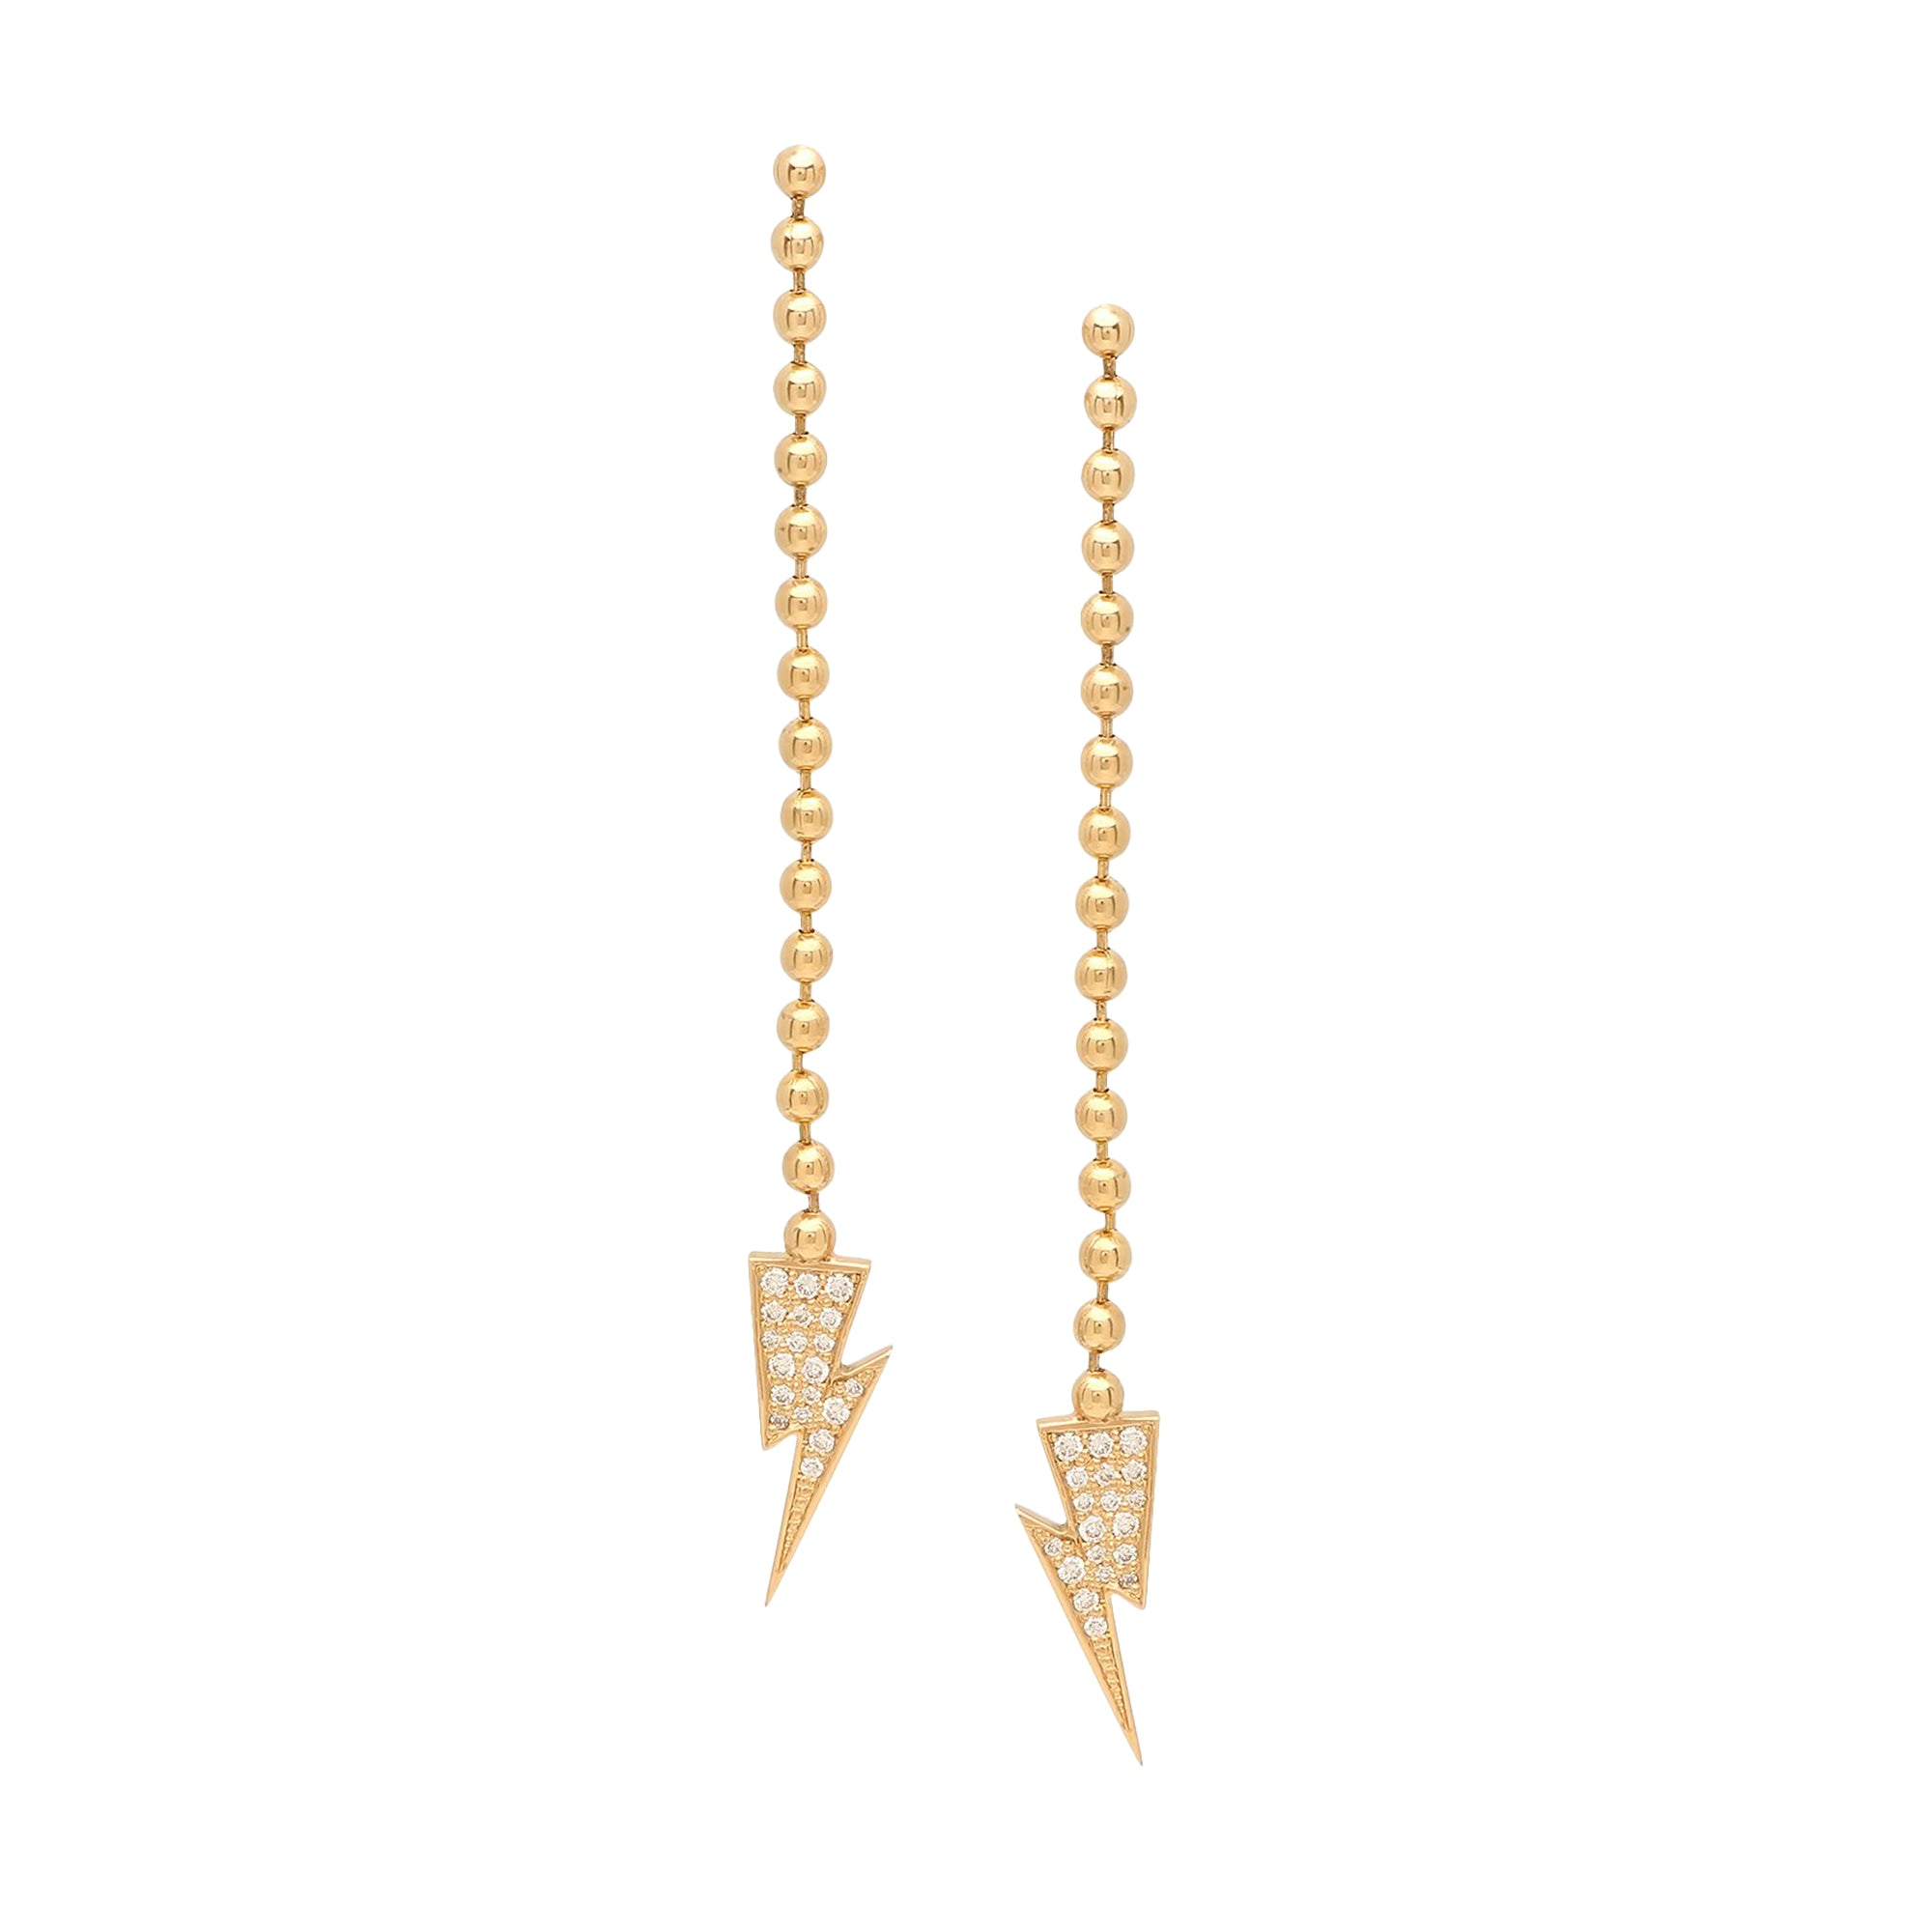 Gold & White Diamond Lighening Bolt Dangle Earring by Established for Broken English Jewelry